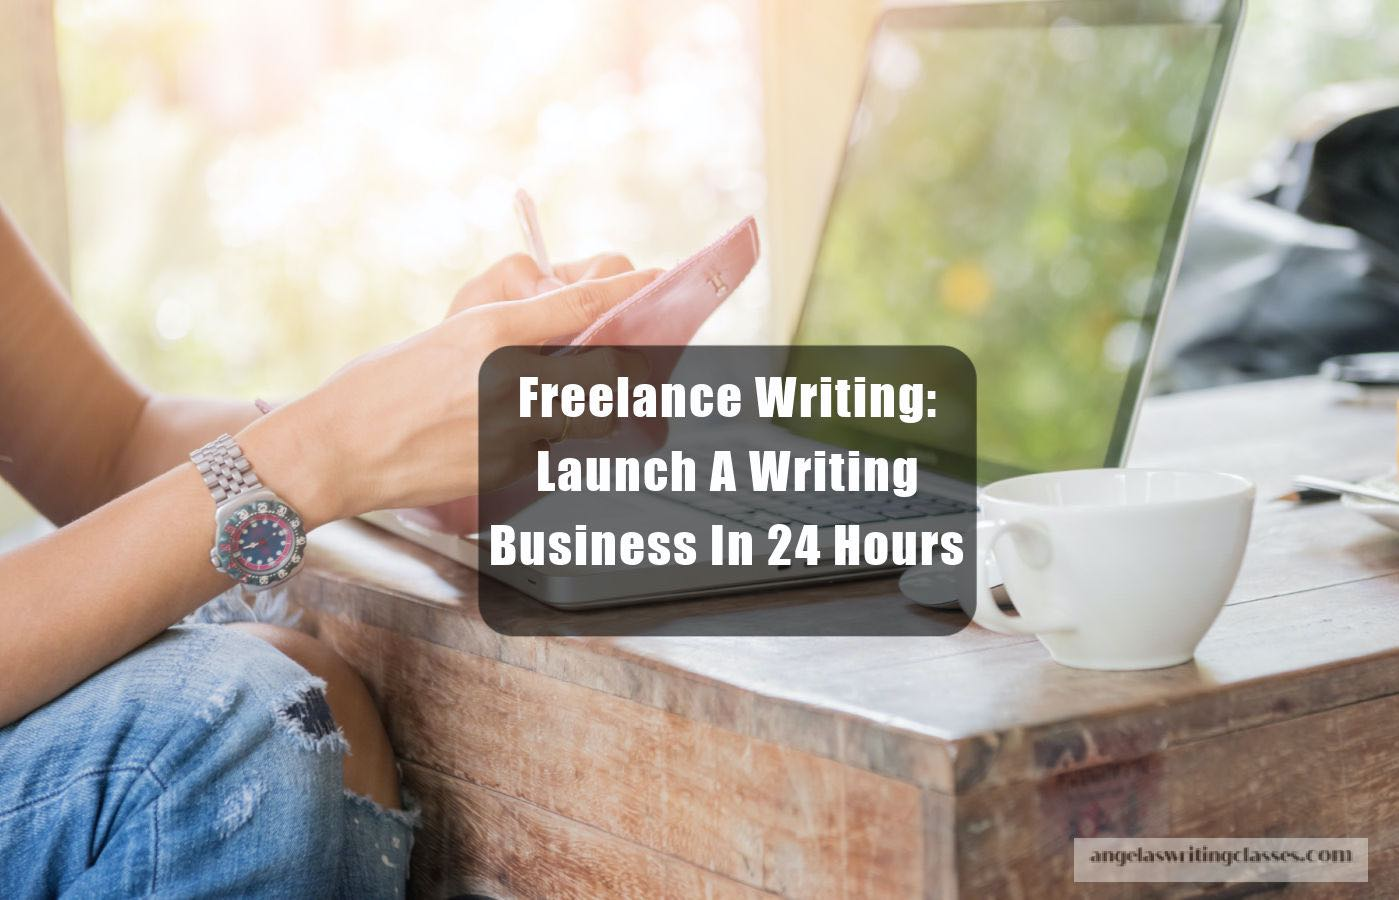 Freelance Writing: Launch A Writing Business In 24 Hours